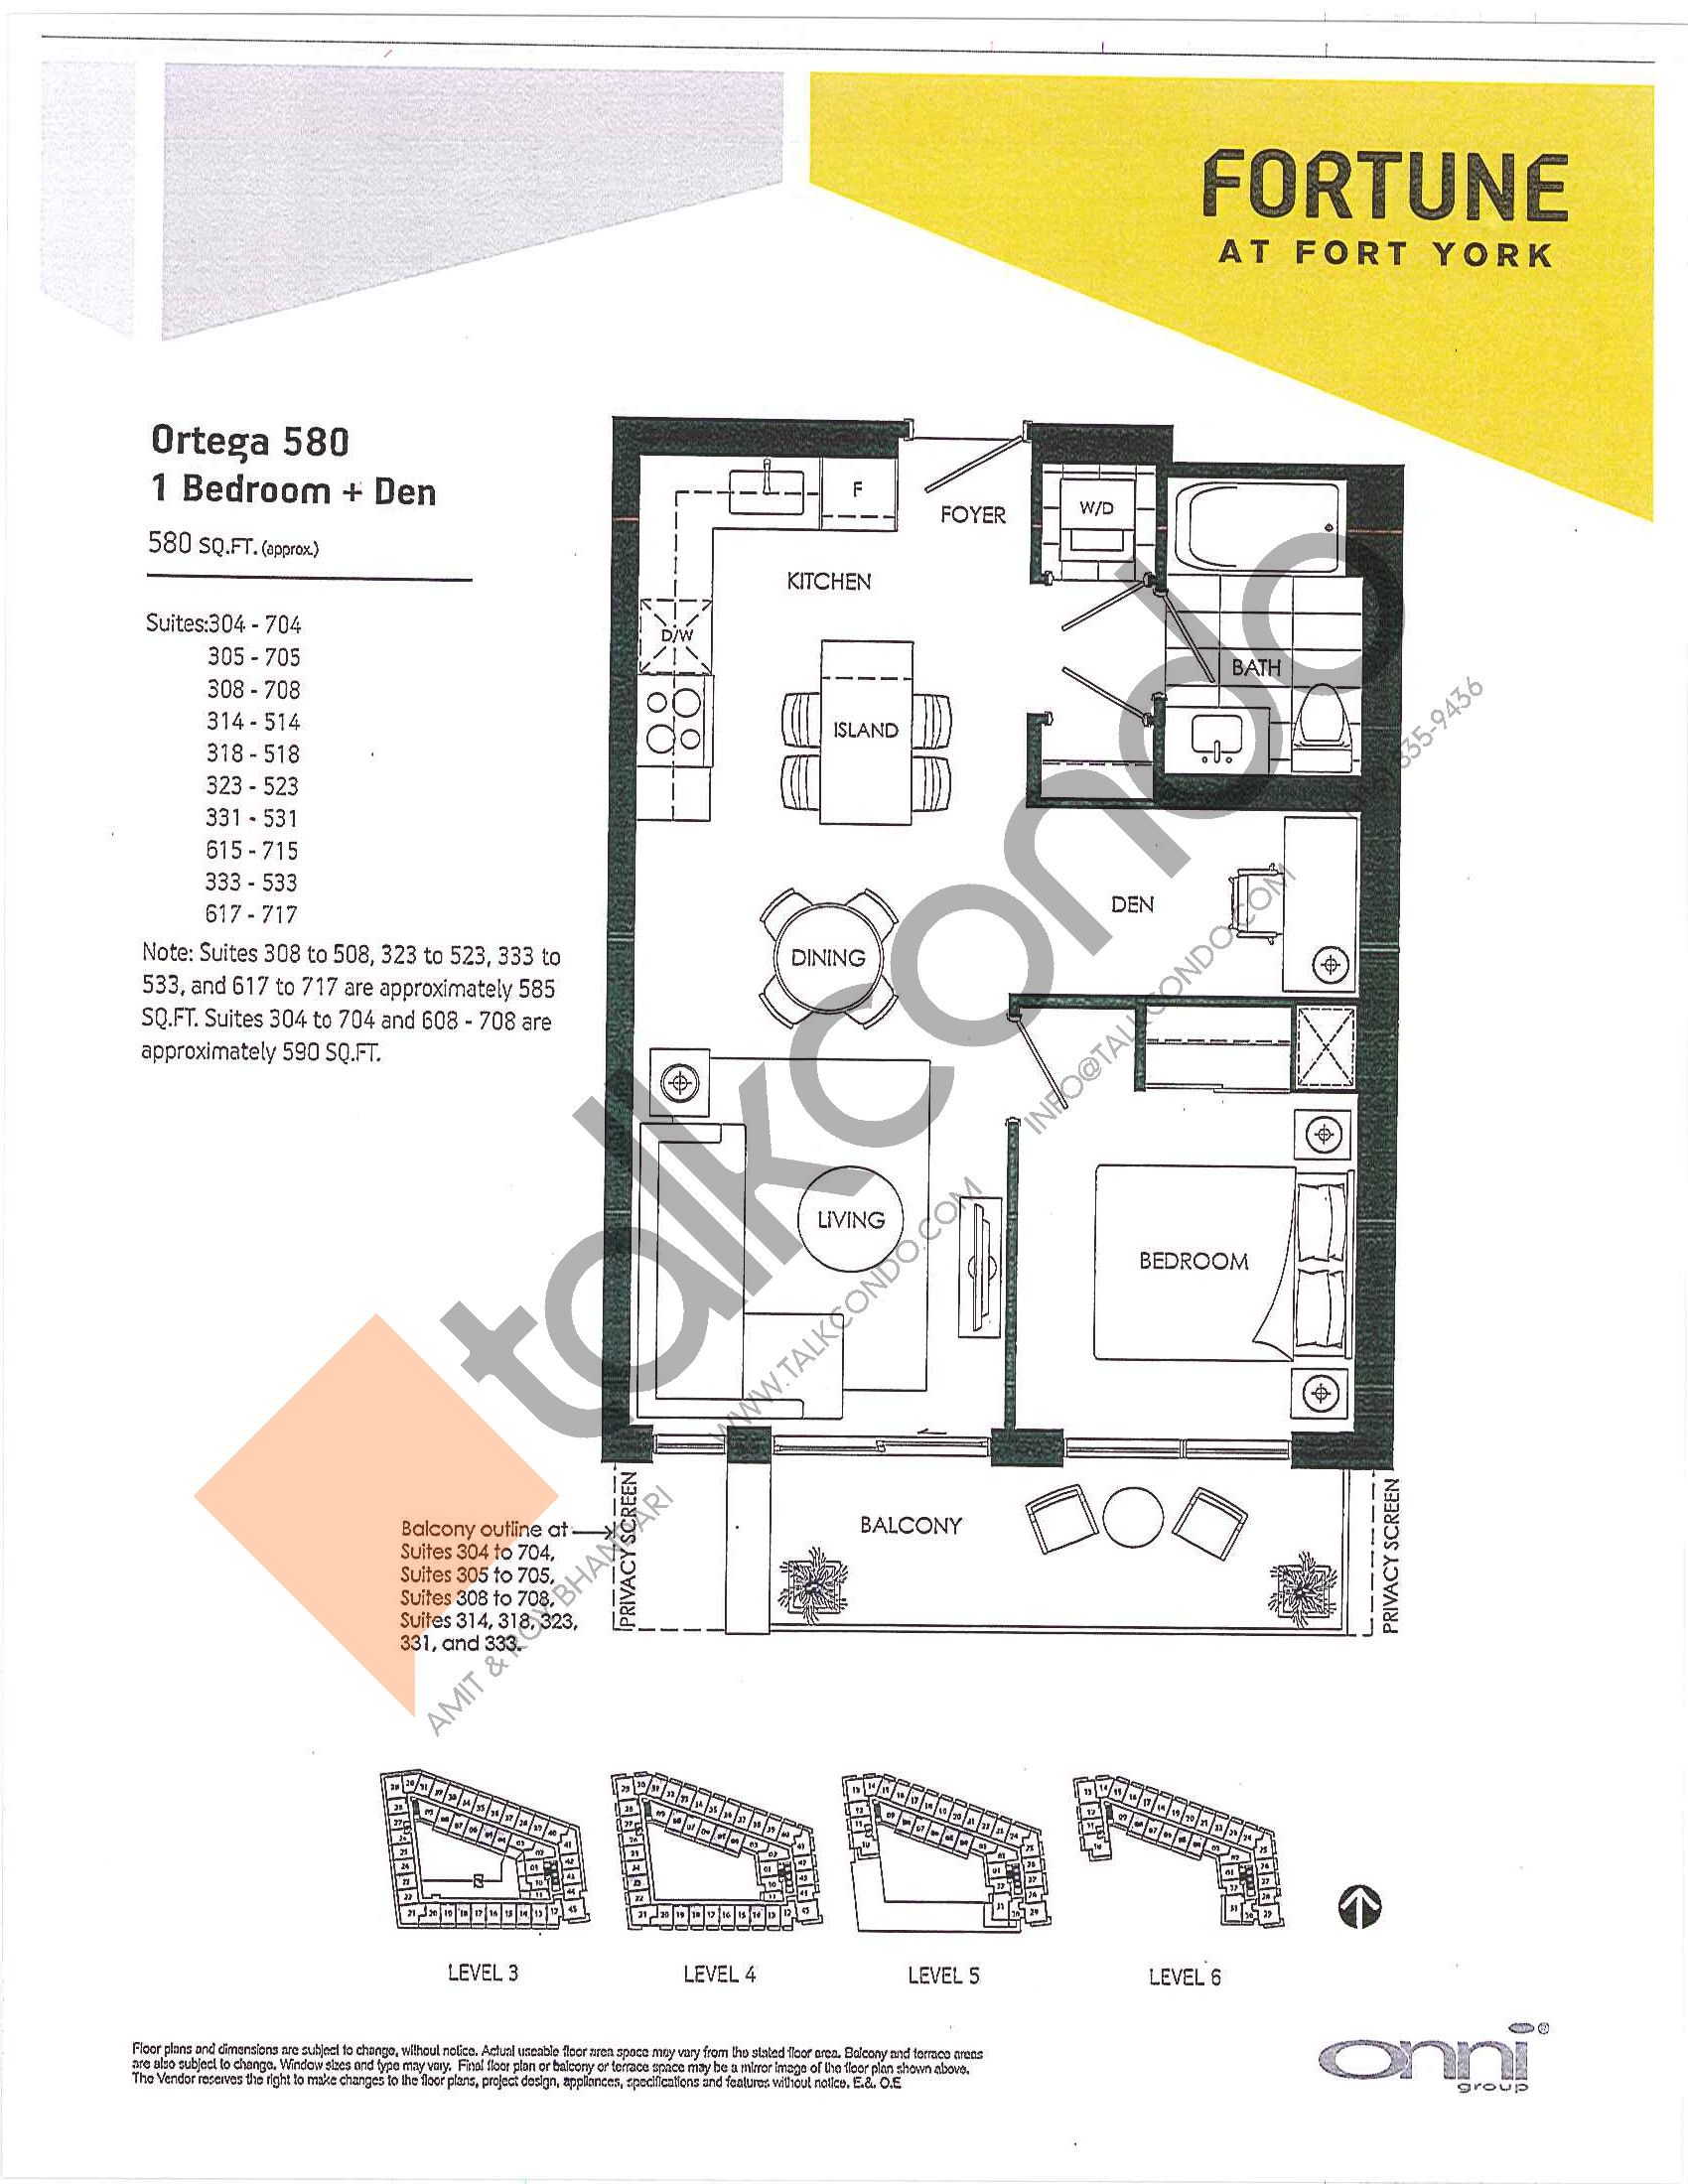 Ortega 580 Floor Plan at Fortune at Fort York - 580 sq.ft